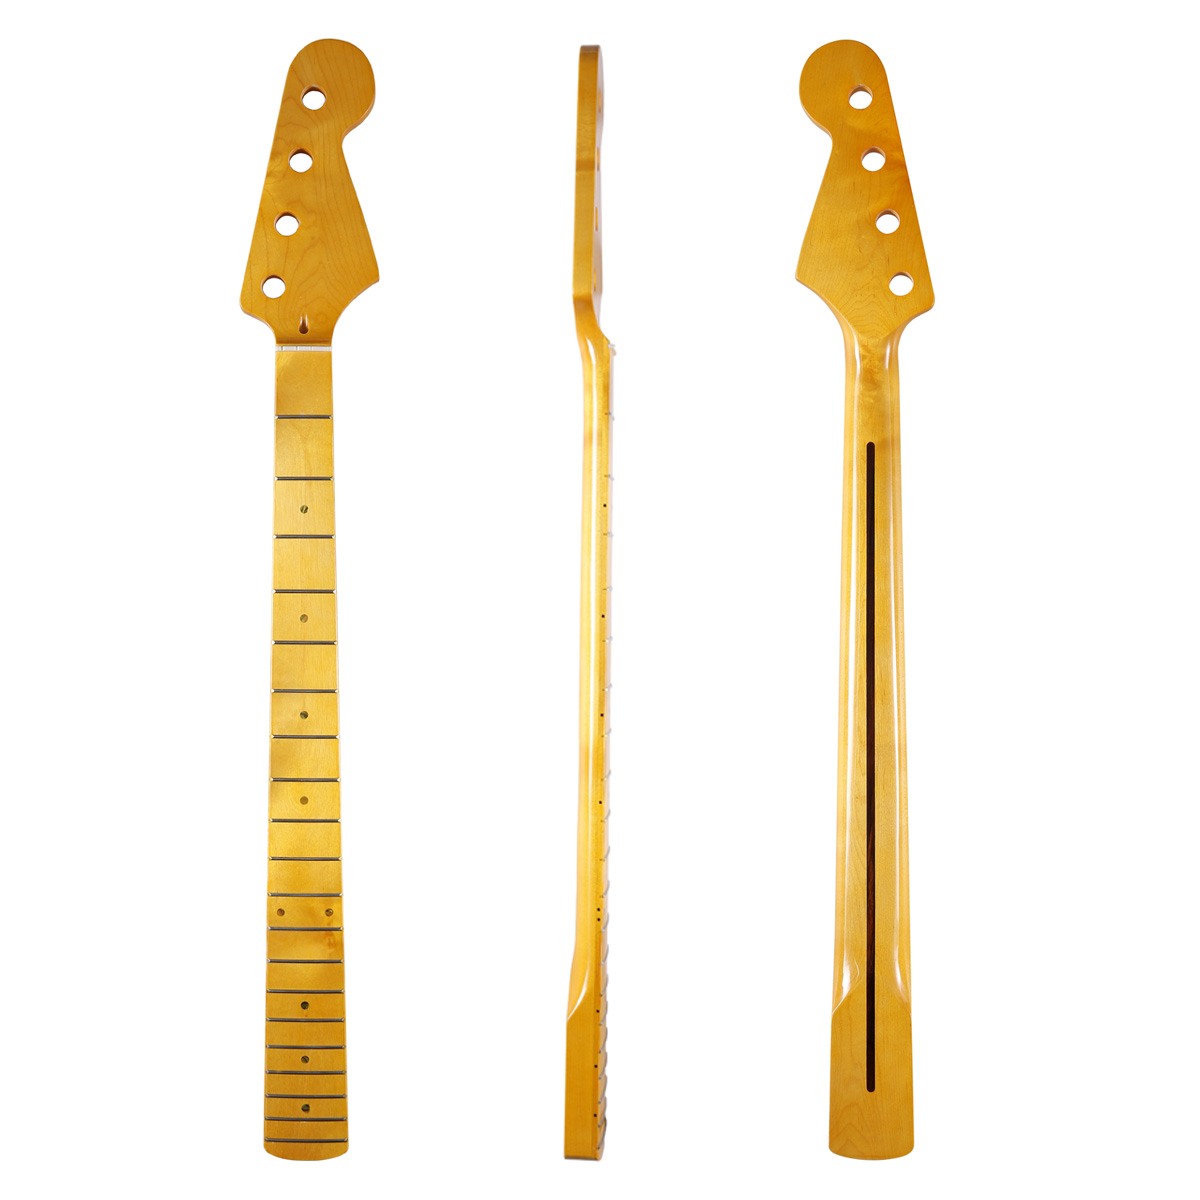 Dopro 20 Fret 4 String Electric J Bass Canadian Maple Guitar Neck with Abalone Shell Inlay and Bone Nut for Jazz Bass